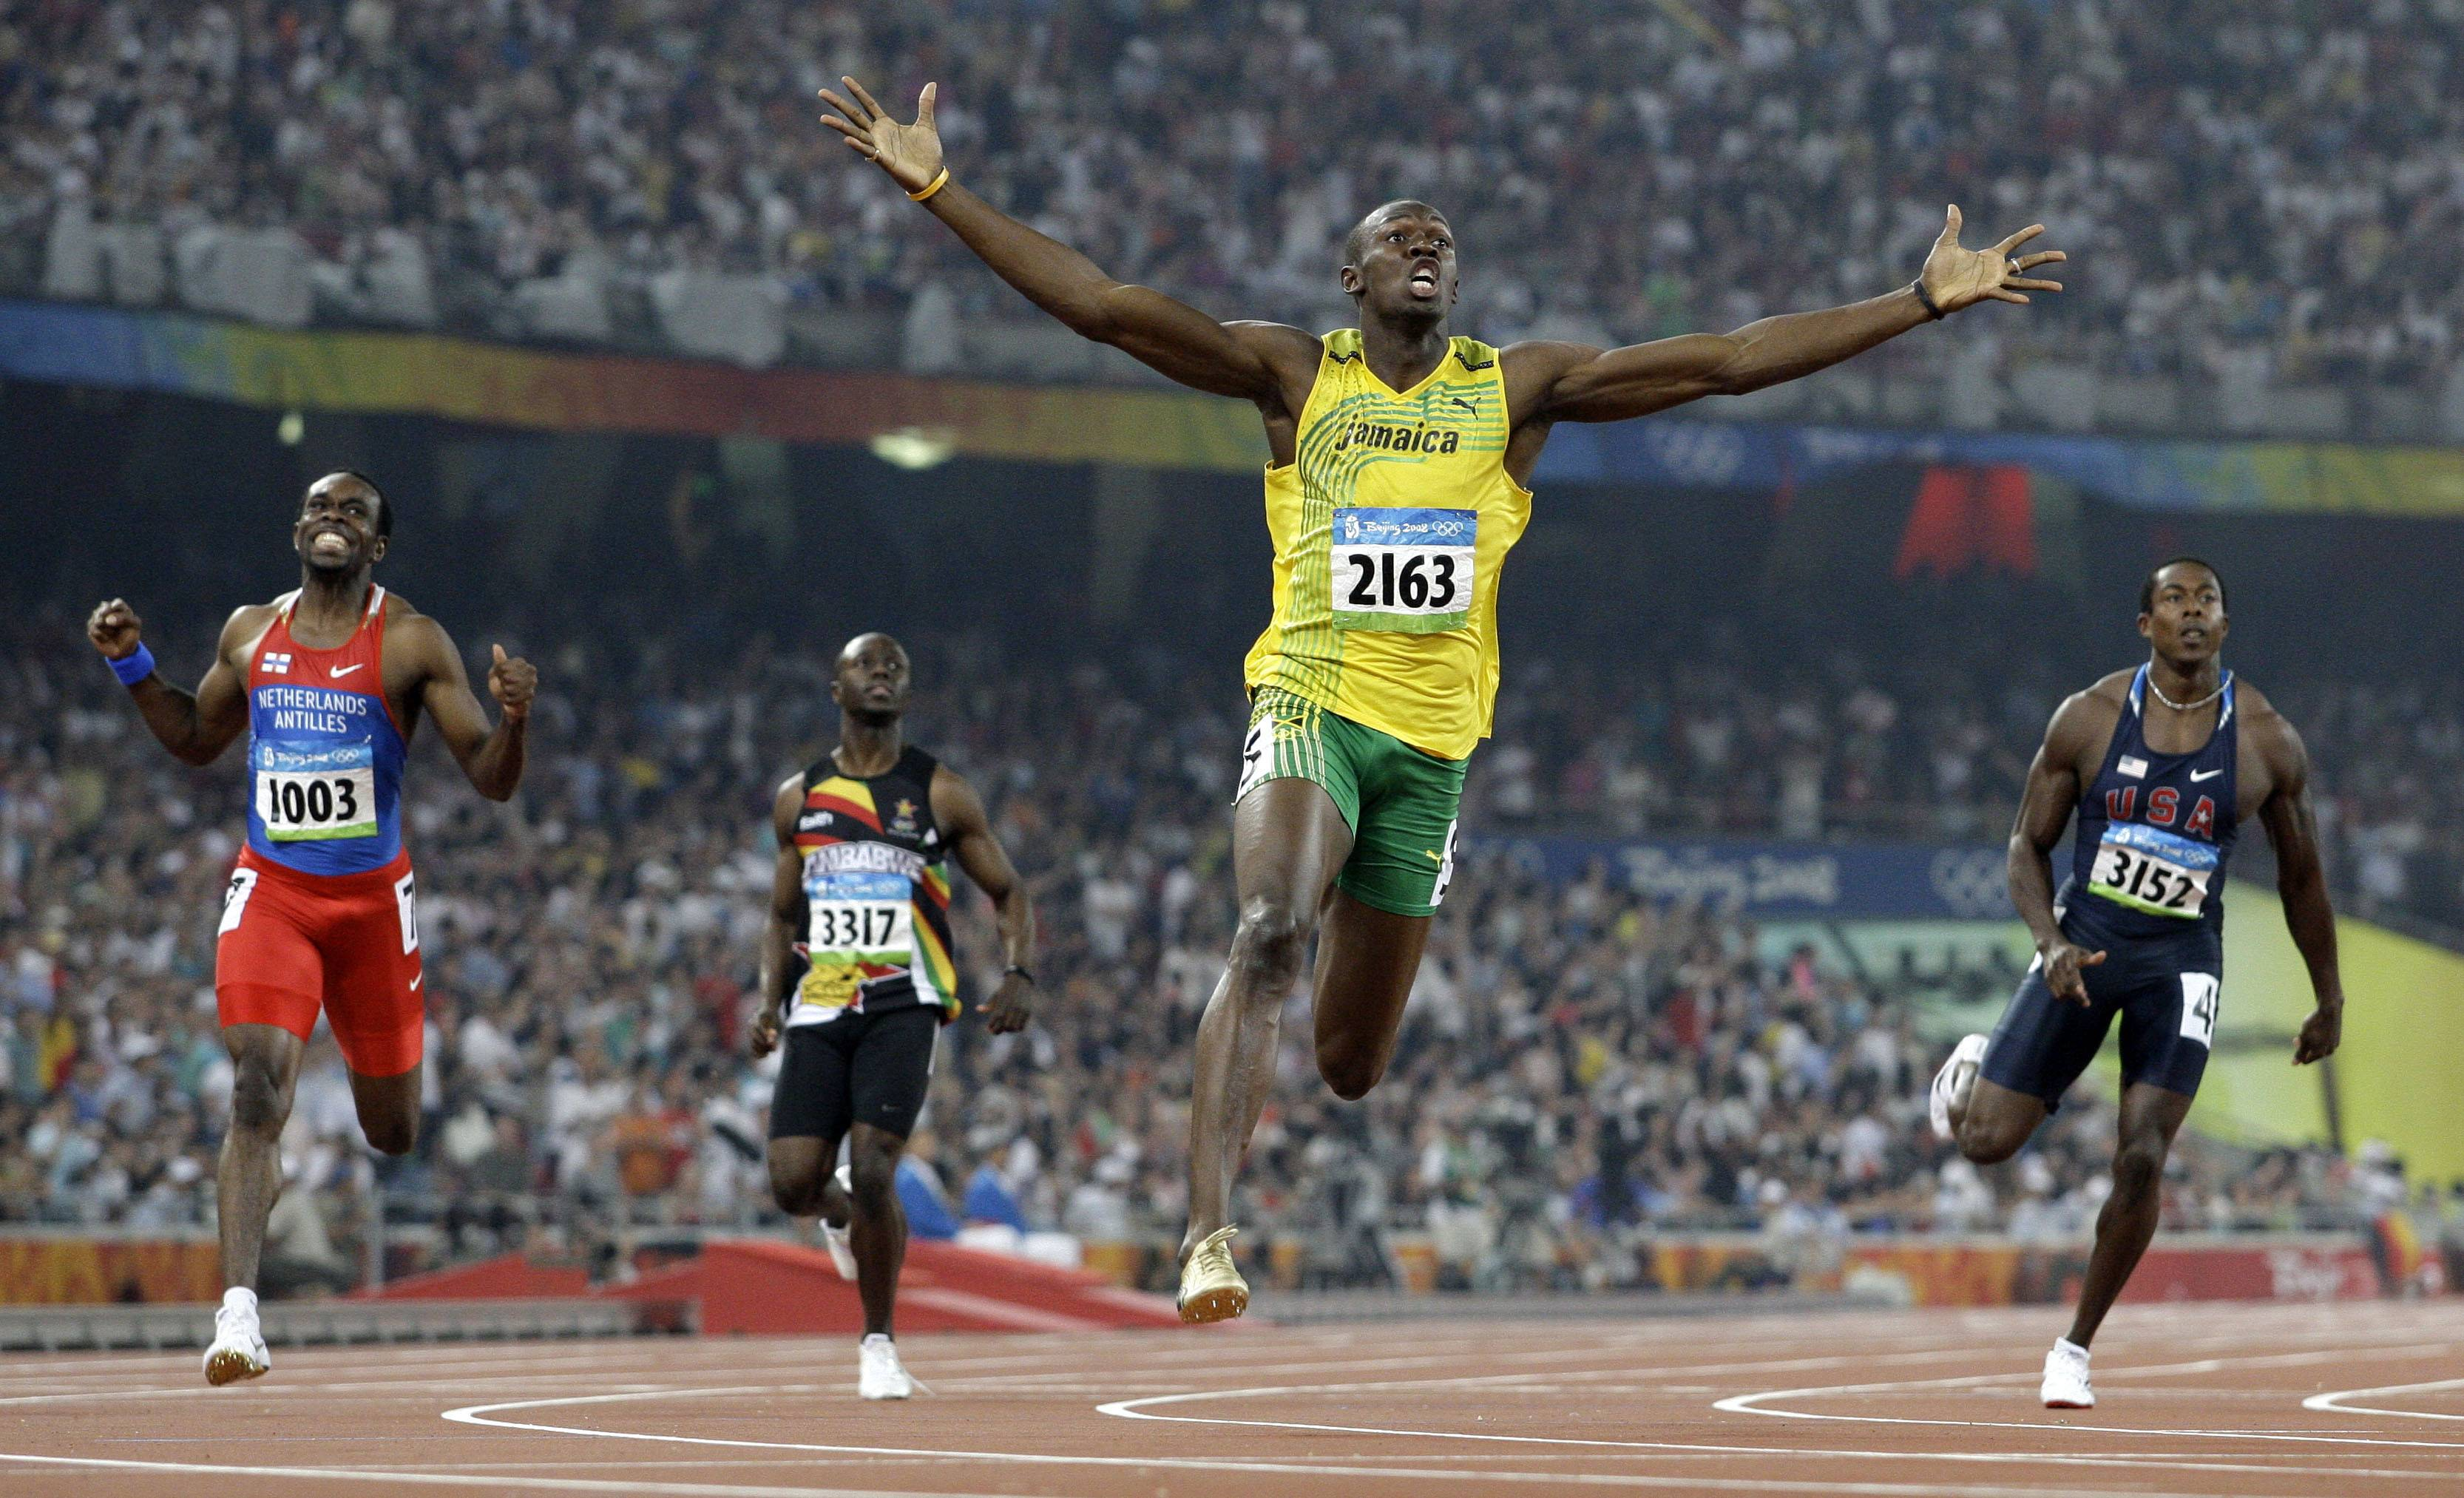 In this Aug. 20, 2008 file photo made by Associated Press photographer Anja Niedringhaus, Jamaica's Usain Bolt crosses the finish line to win the gold in the men's 200-meter final at the Beijing 2008 Olympics in Beijing.